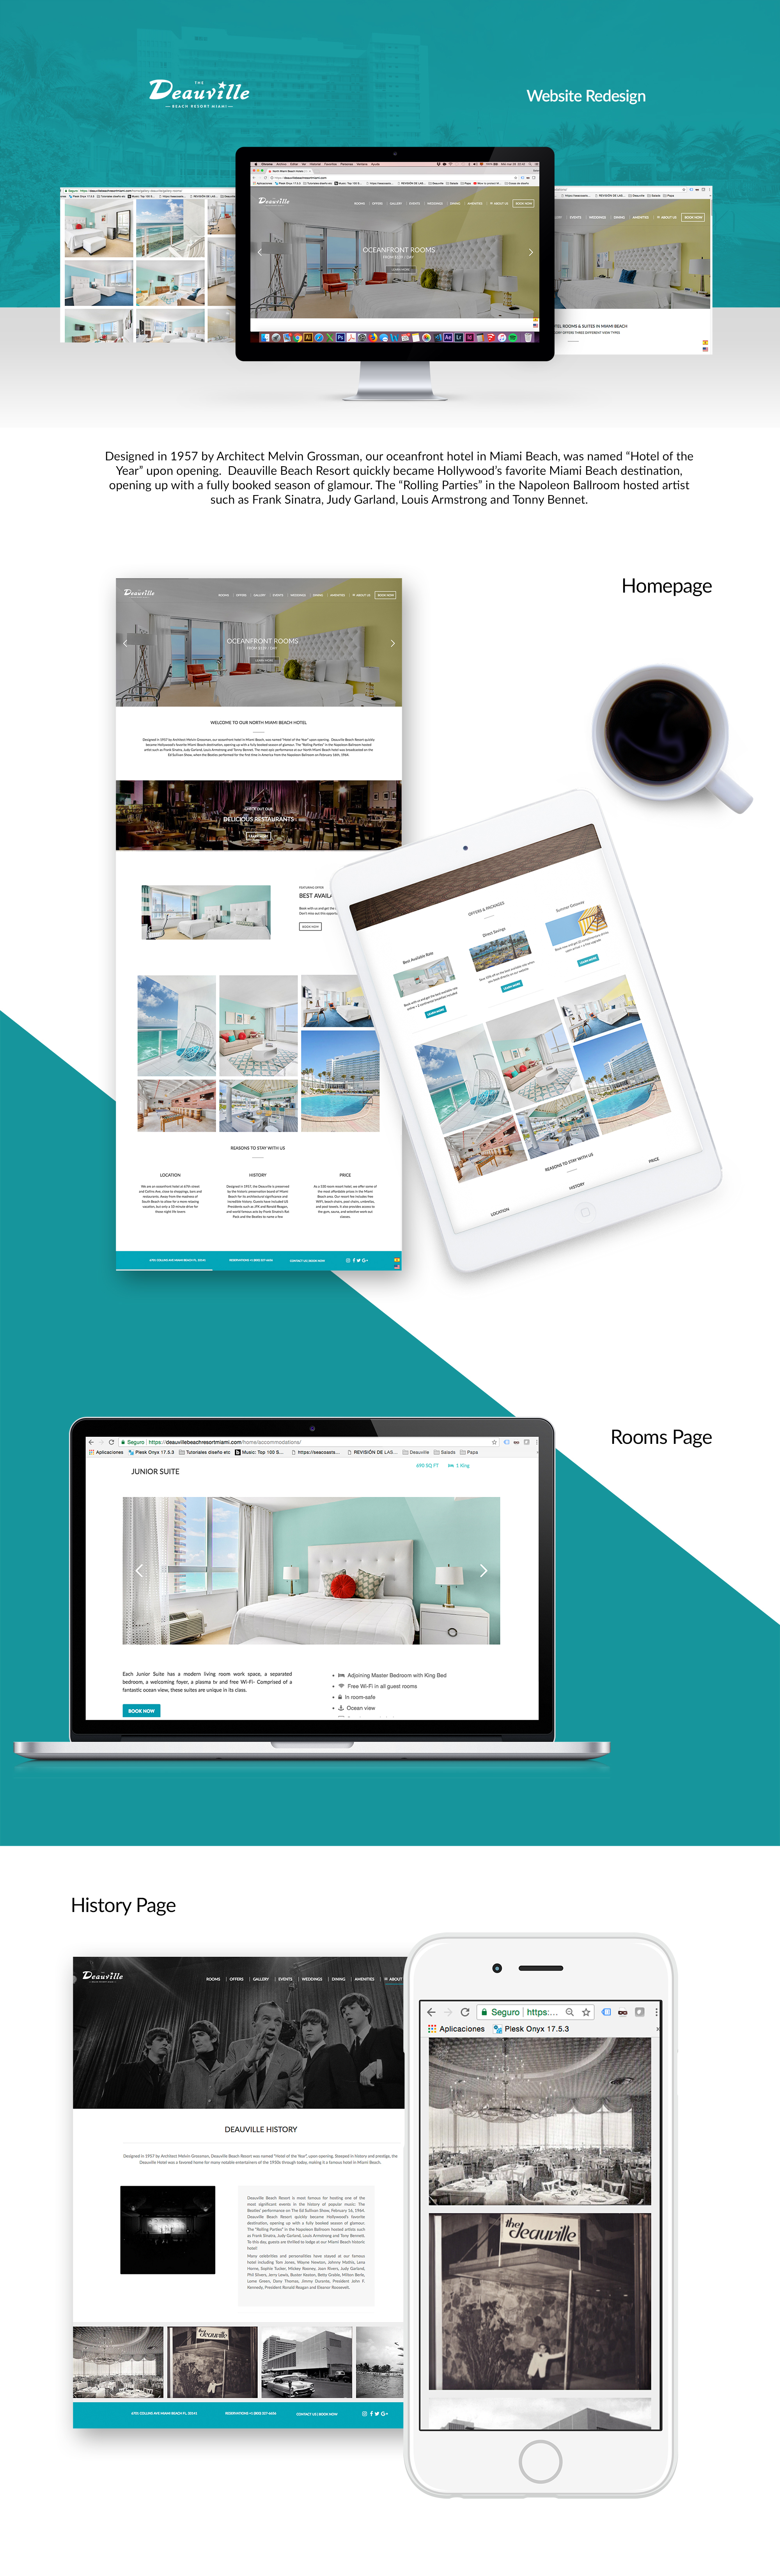 Seacoast Suites website redesign